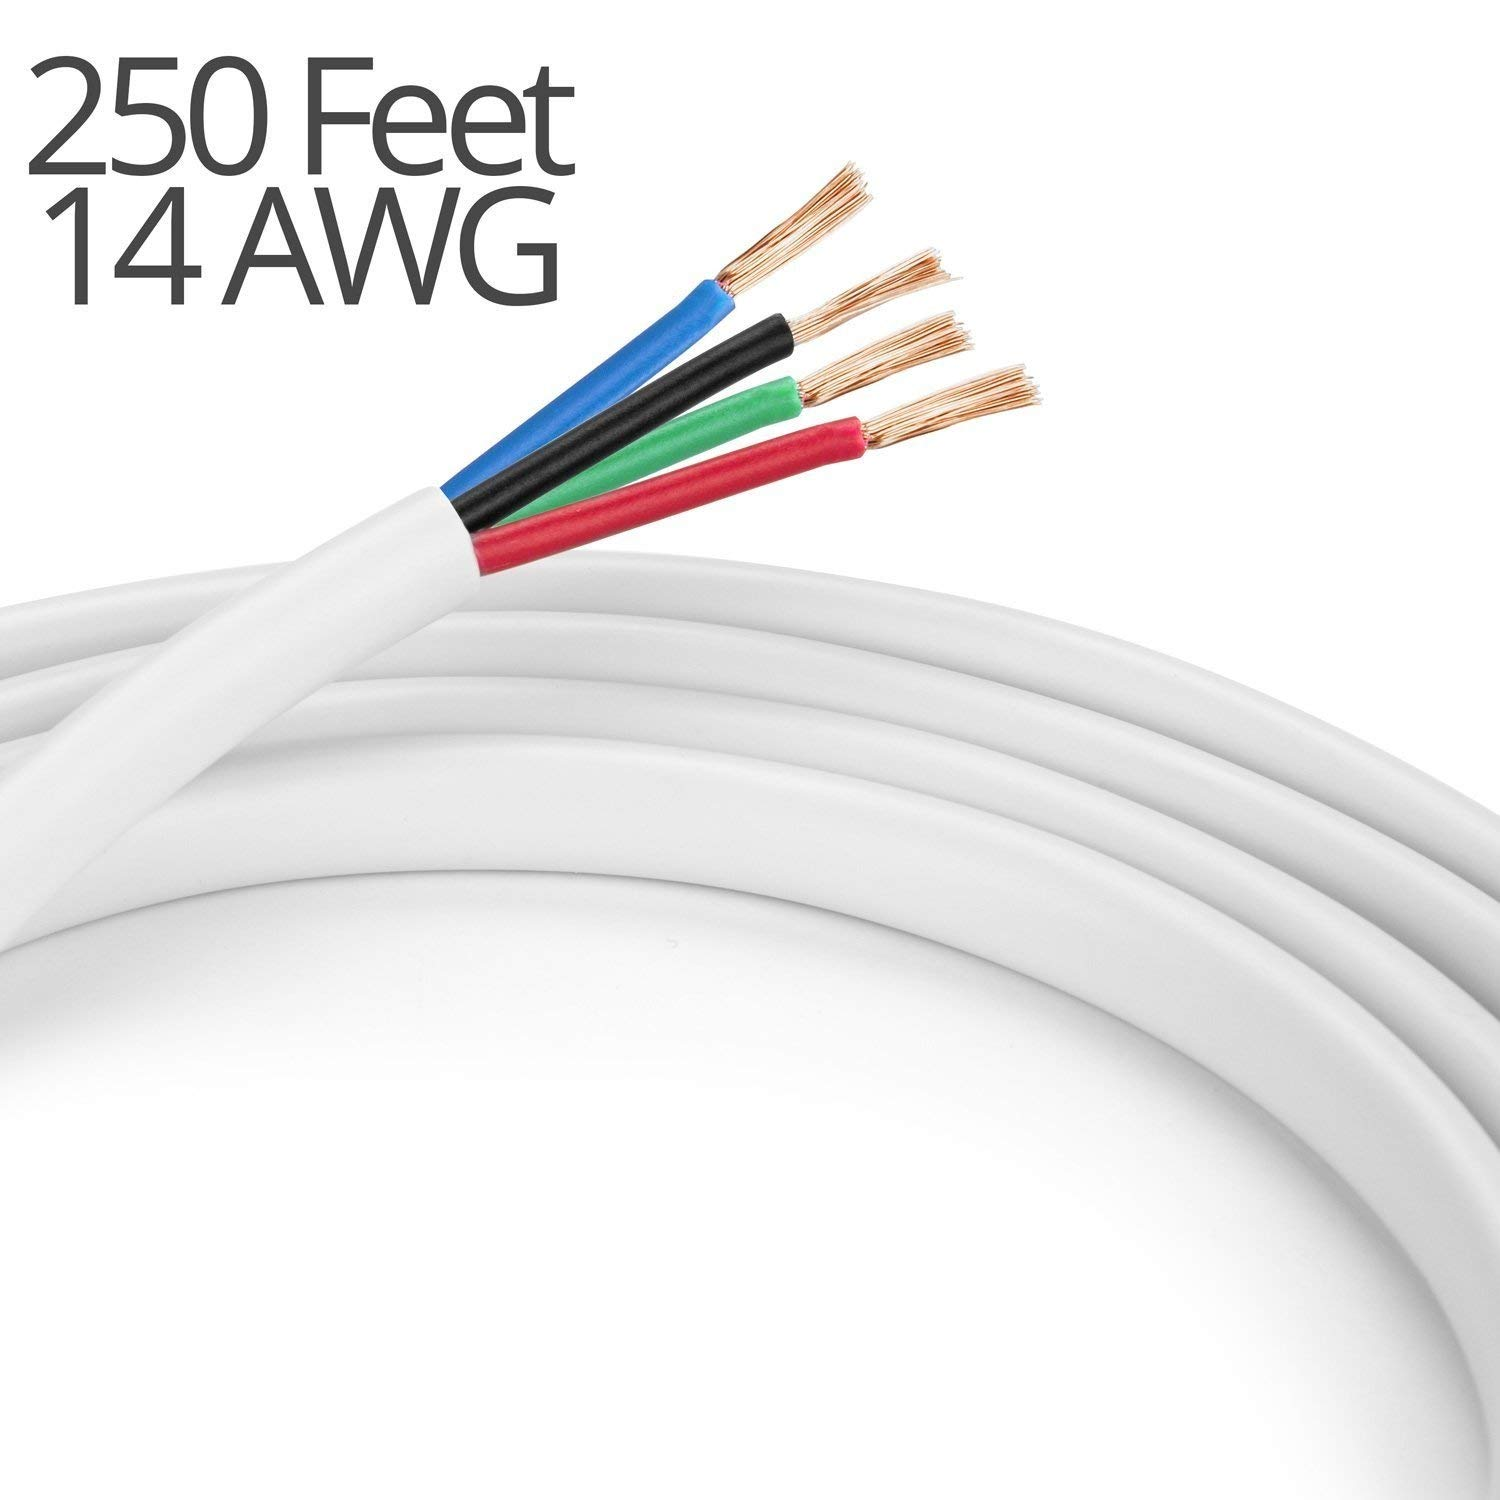 K-tech In Wall Speaker Wire 14AWG UL CL2 Rated 4-Conductor Wire White - Oxygen Free Bare Copper for Home Theater and Car Audio (4-Conductor, 250 Feet)